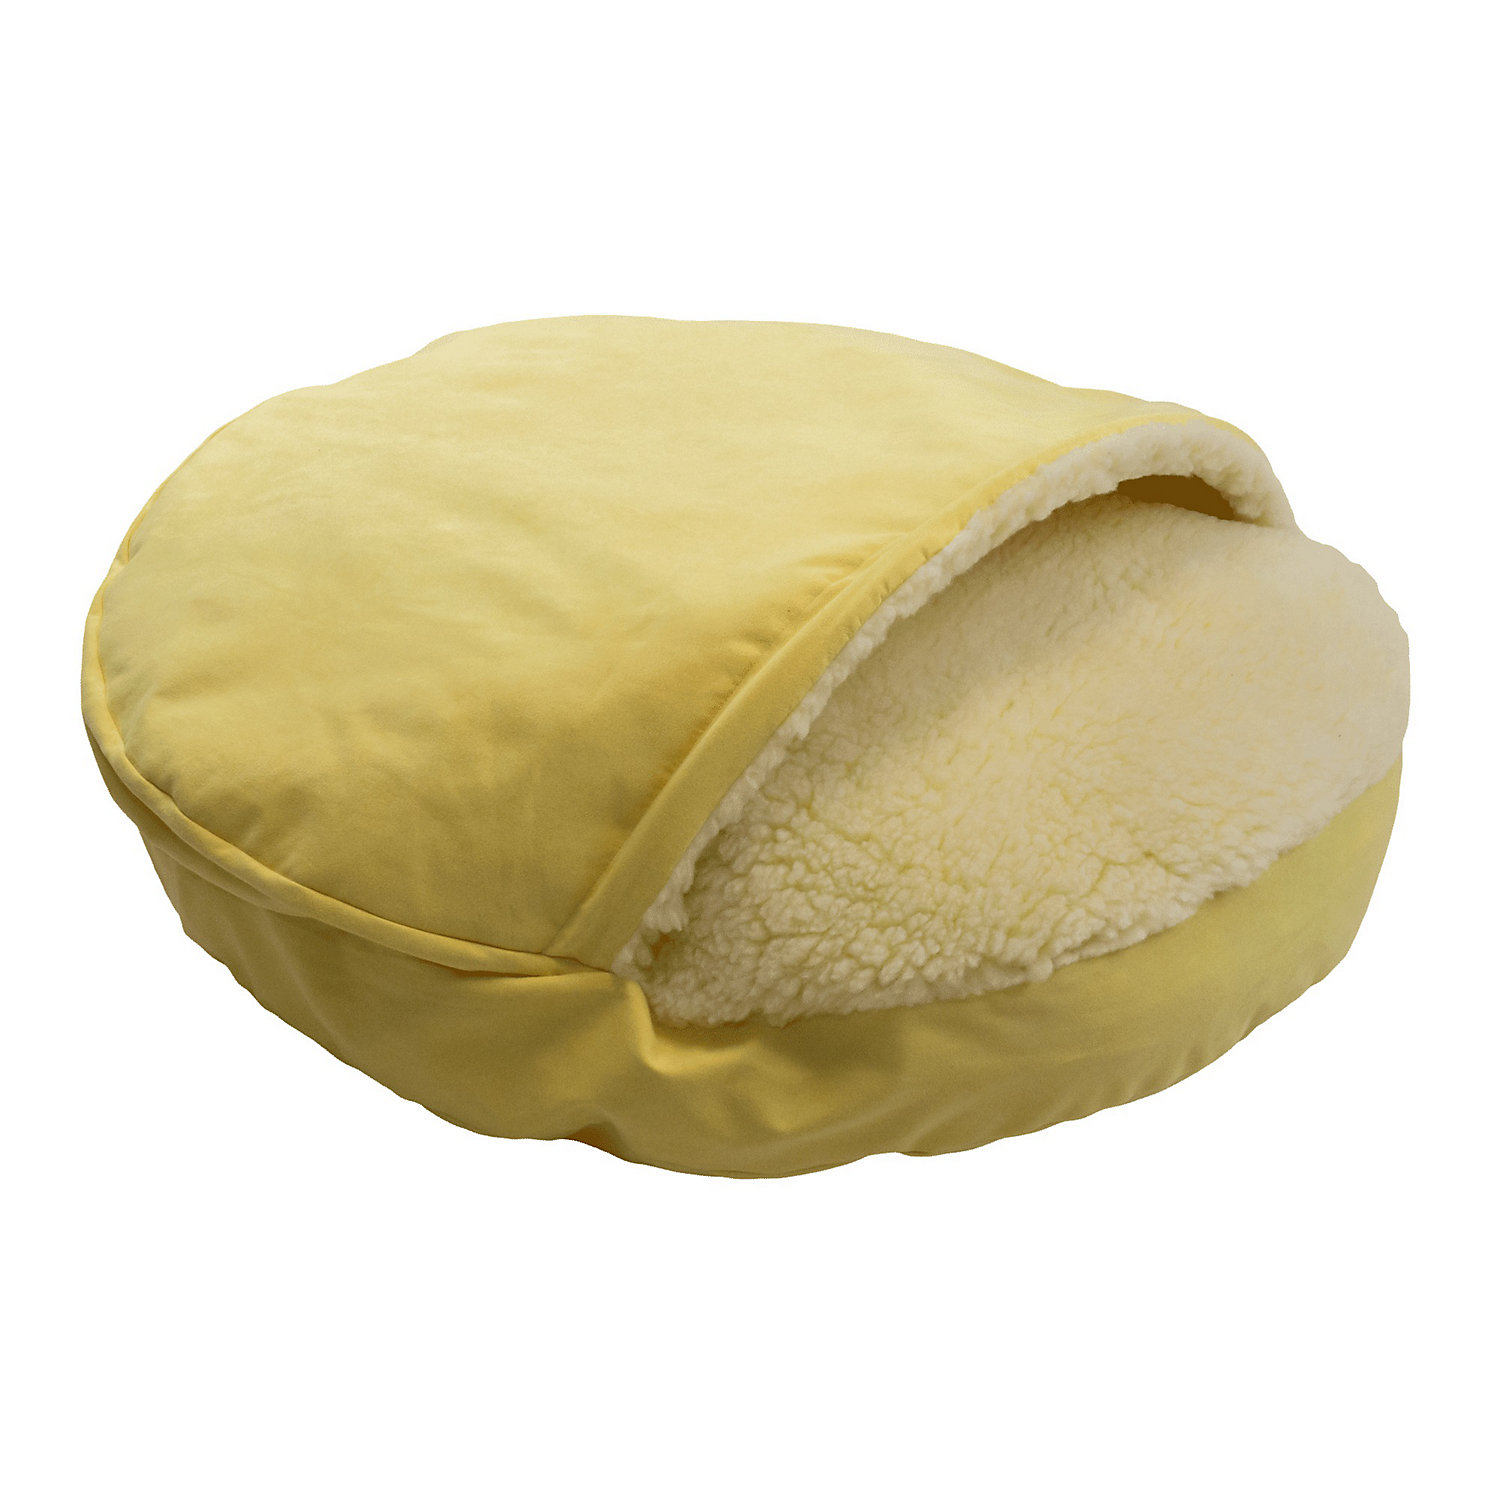 Snoozer Orthopedic Luxury Cozy Cave Pet Bed in Lemon 25 L x 25 W Small